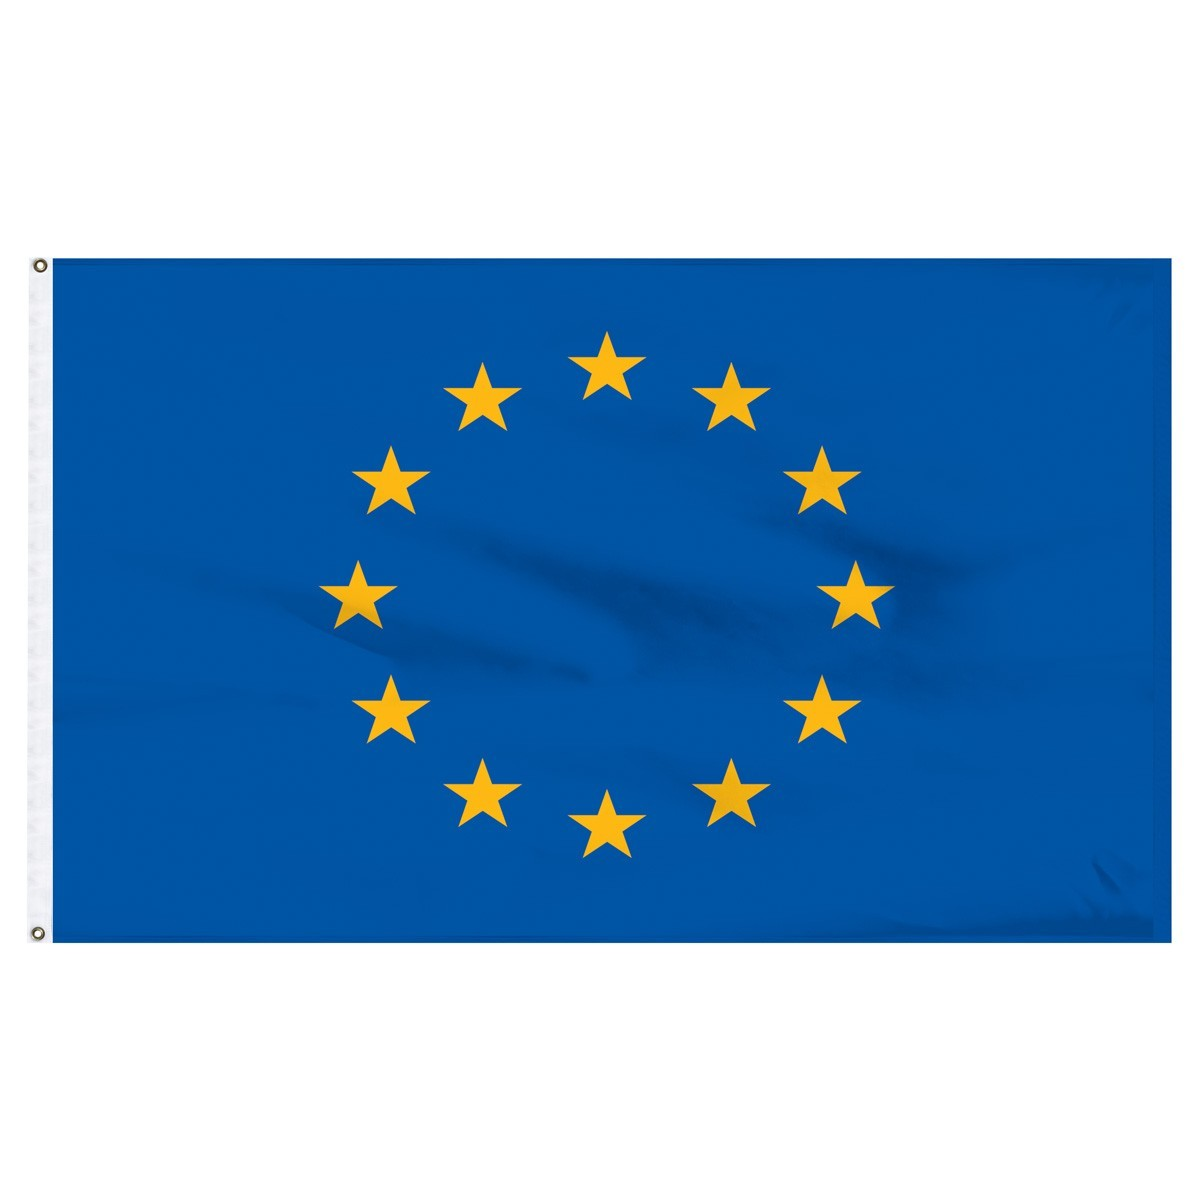 European Union 5' x 8' Outdoor Nylon Flag